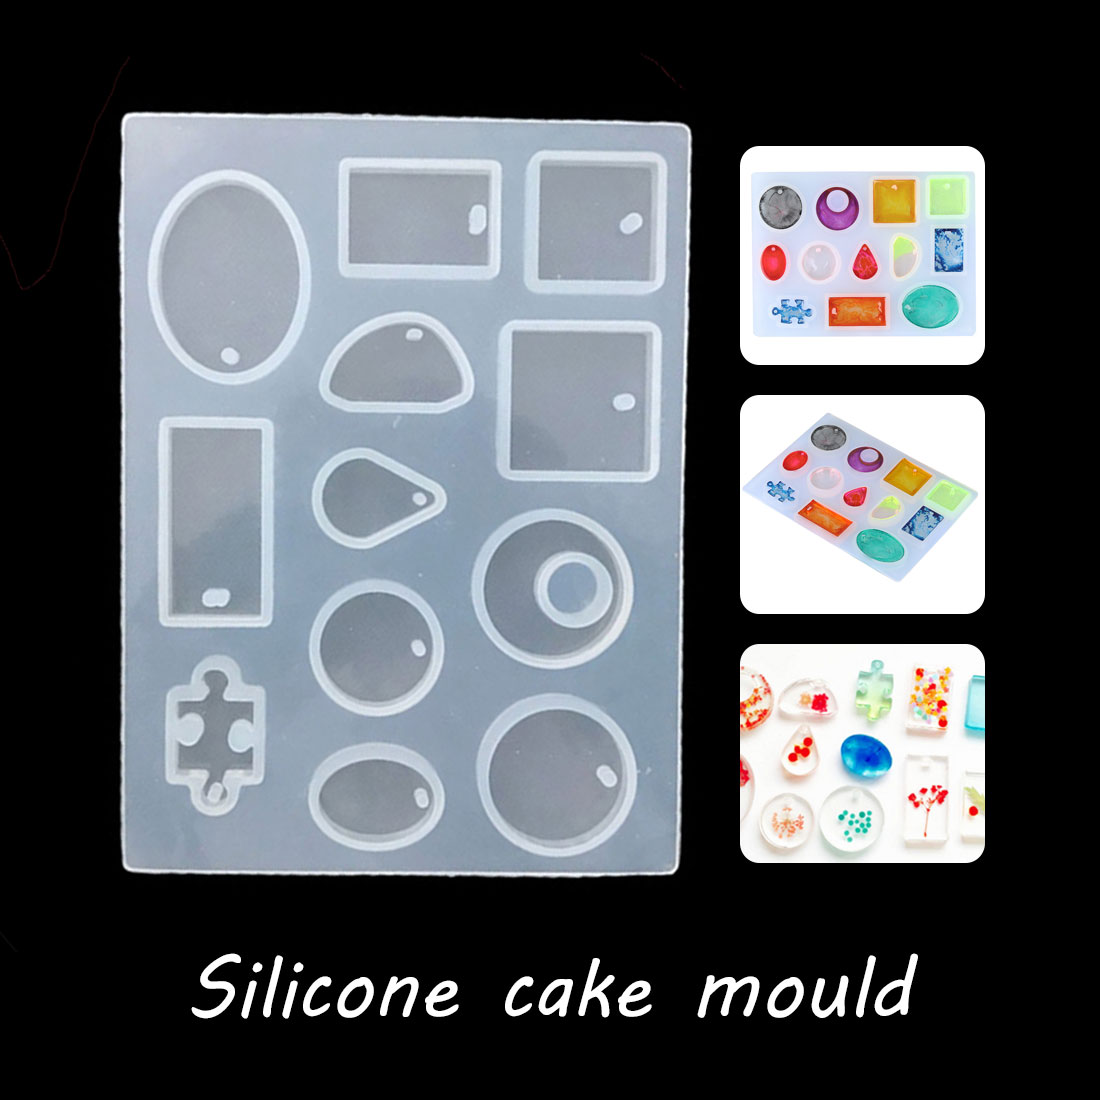 Fashion Scrapbooking Silicone Mould DIY Resin Decorative Craft Jewelry Making Mold Epoxy Resin Molds Cabochon Silicone Mold